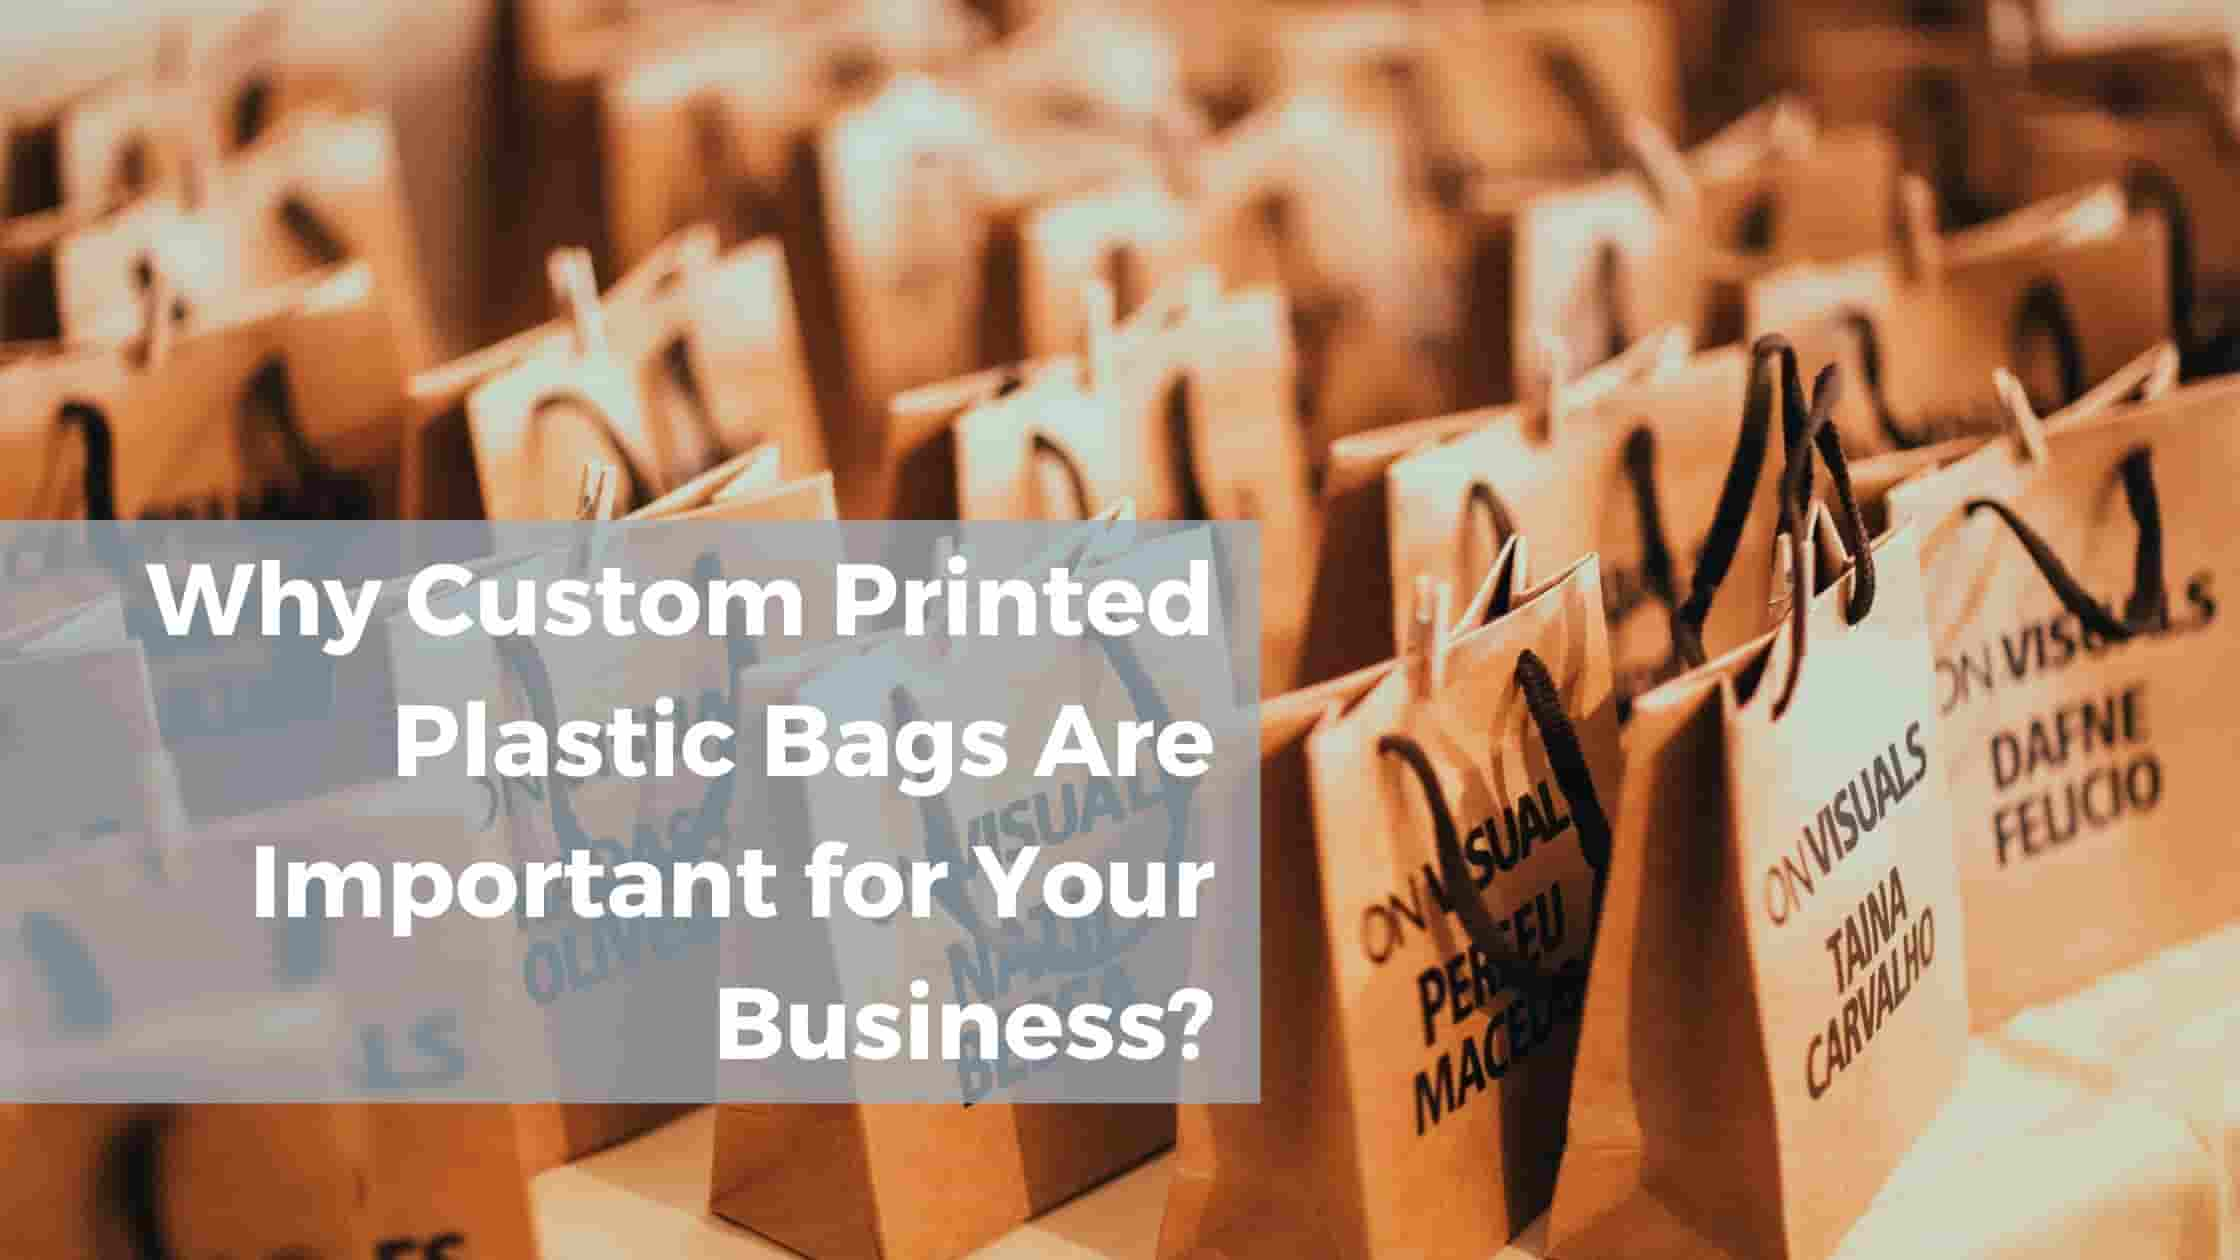 Why Custom Printed Plastic Bags Are Important for Your Business?